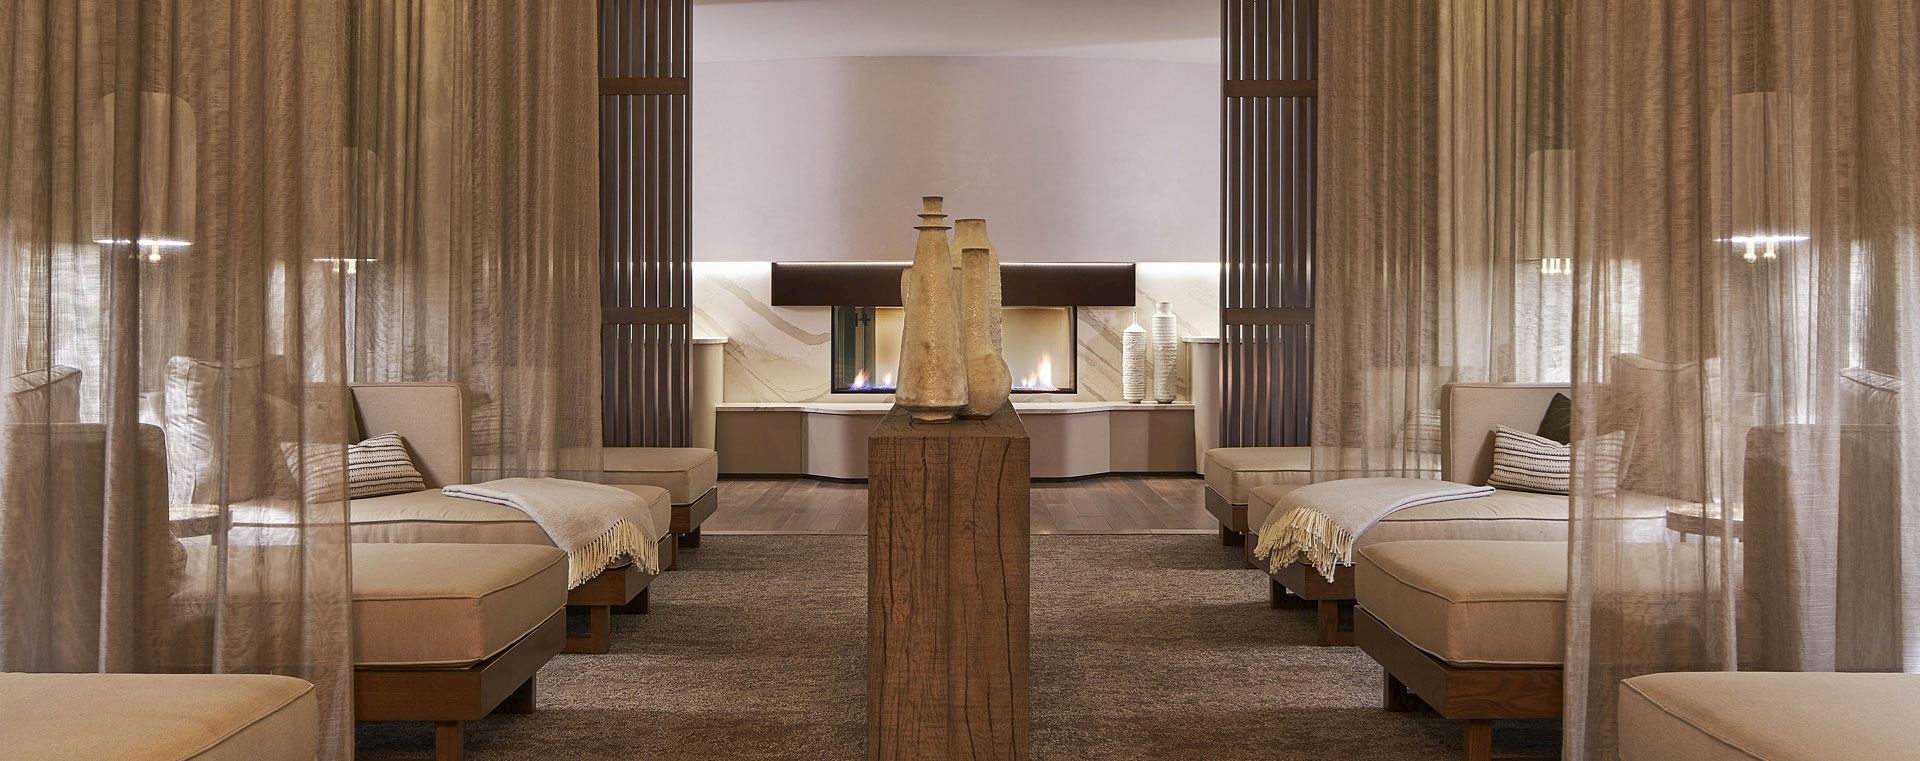 Wellness at Hotel Ivy, A Luxury Collection Hotel, Minneapolis